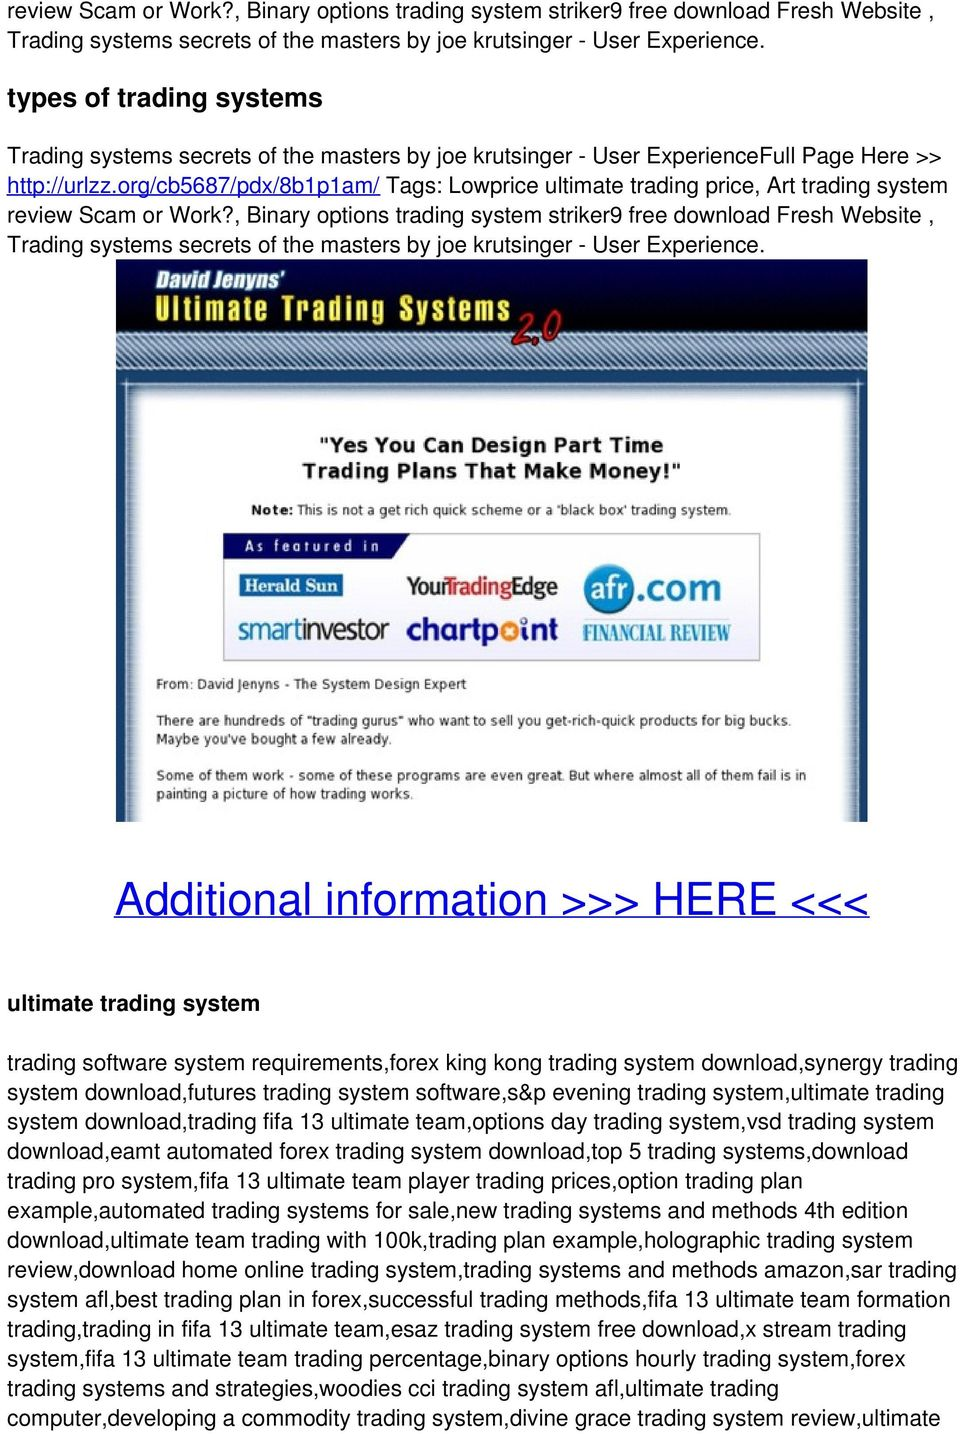 Ultimate trading systems 2.0